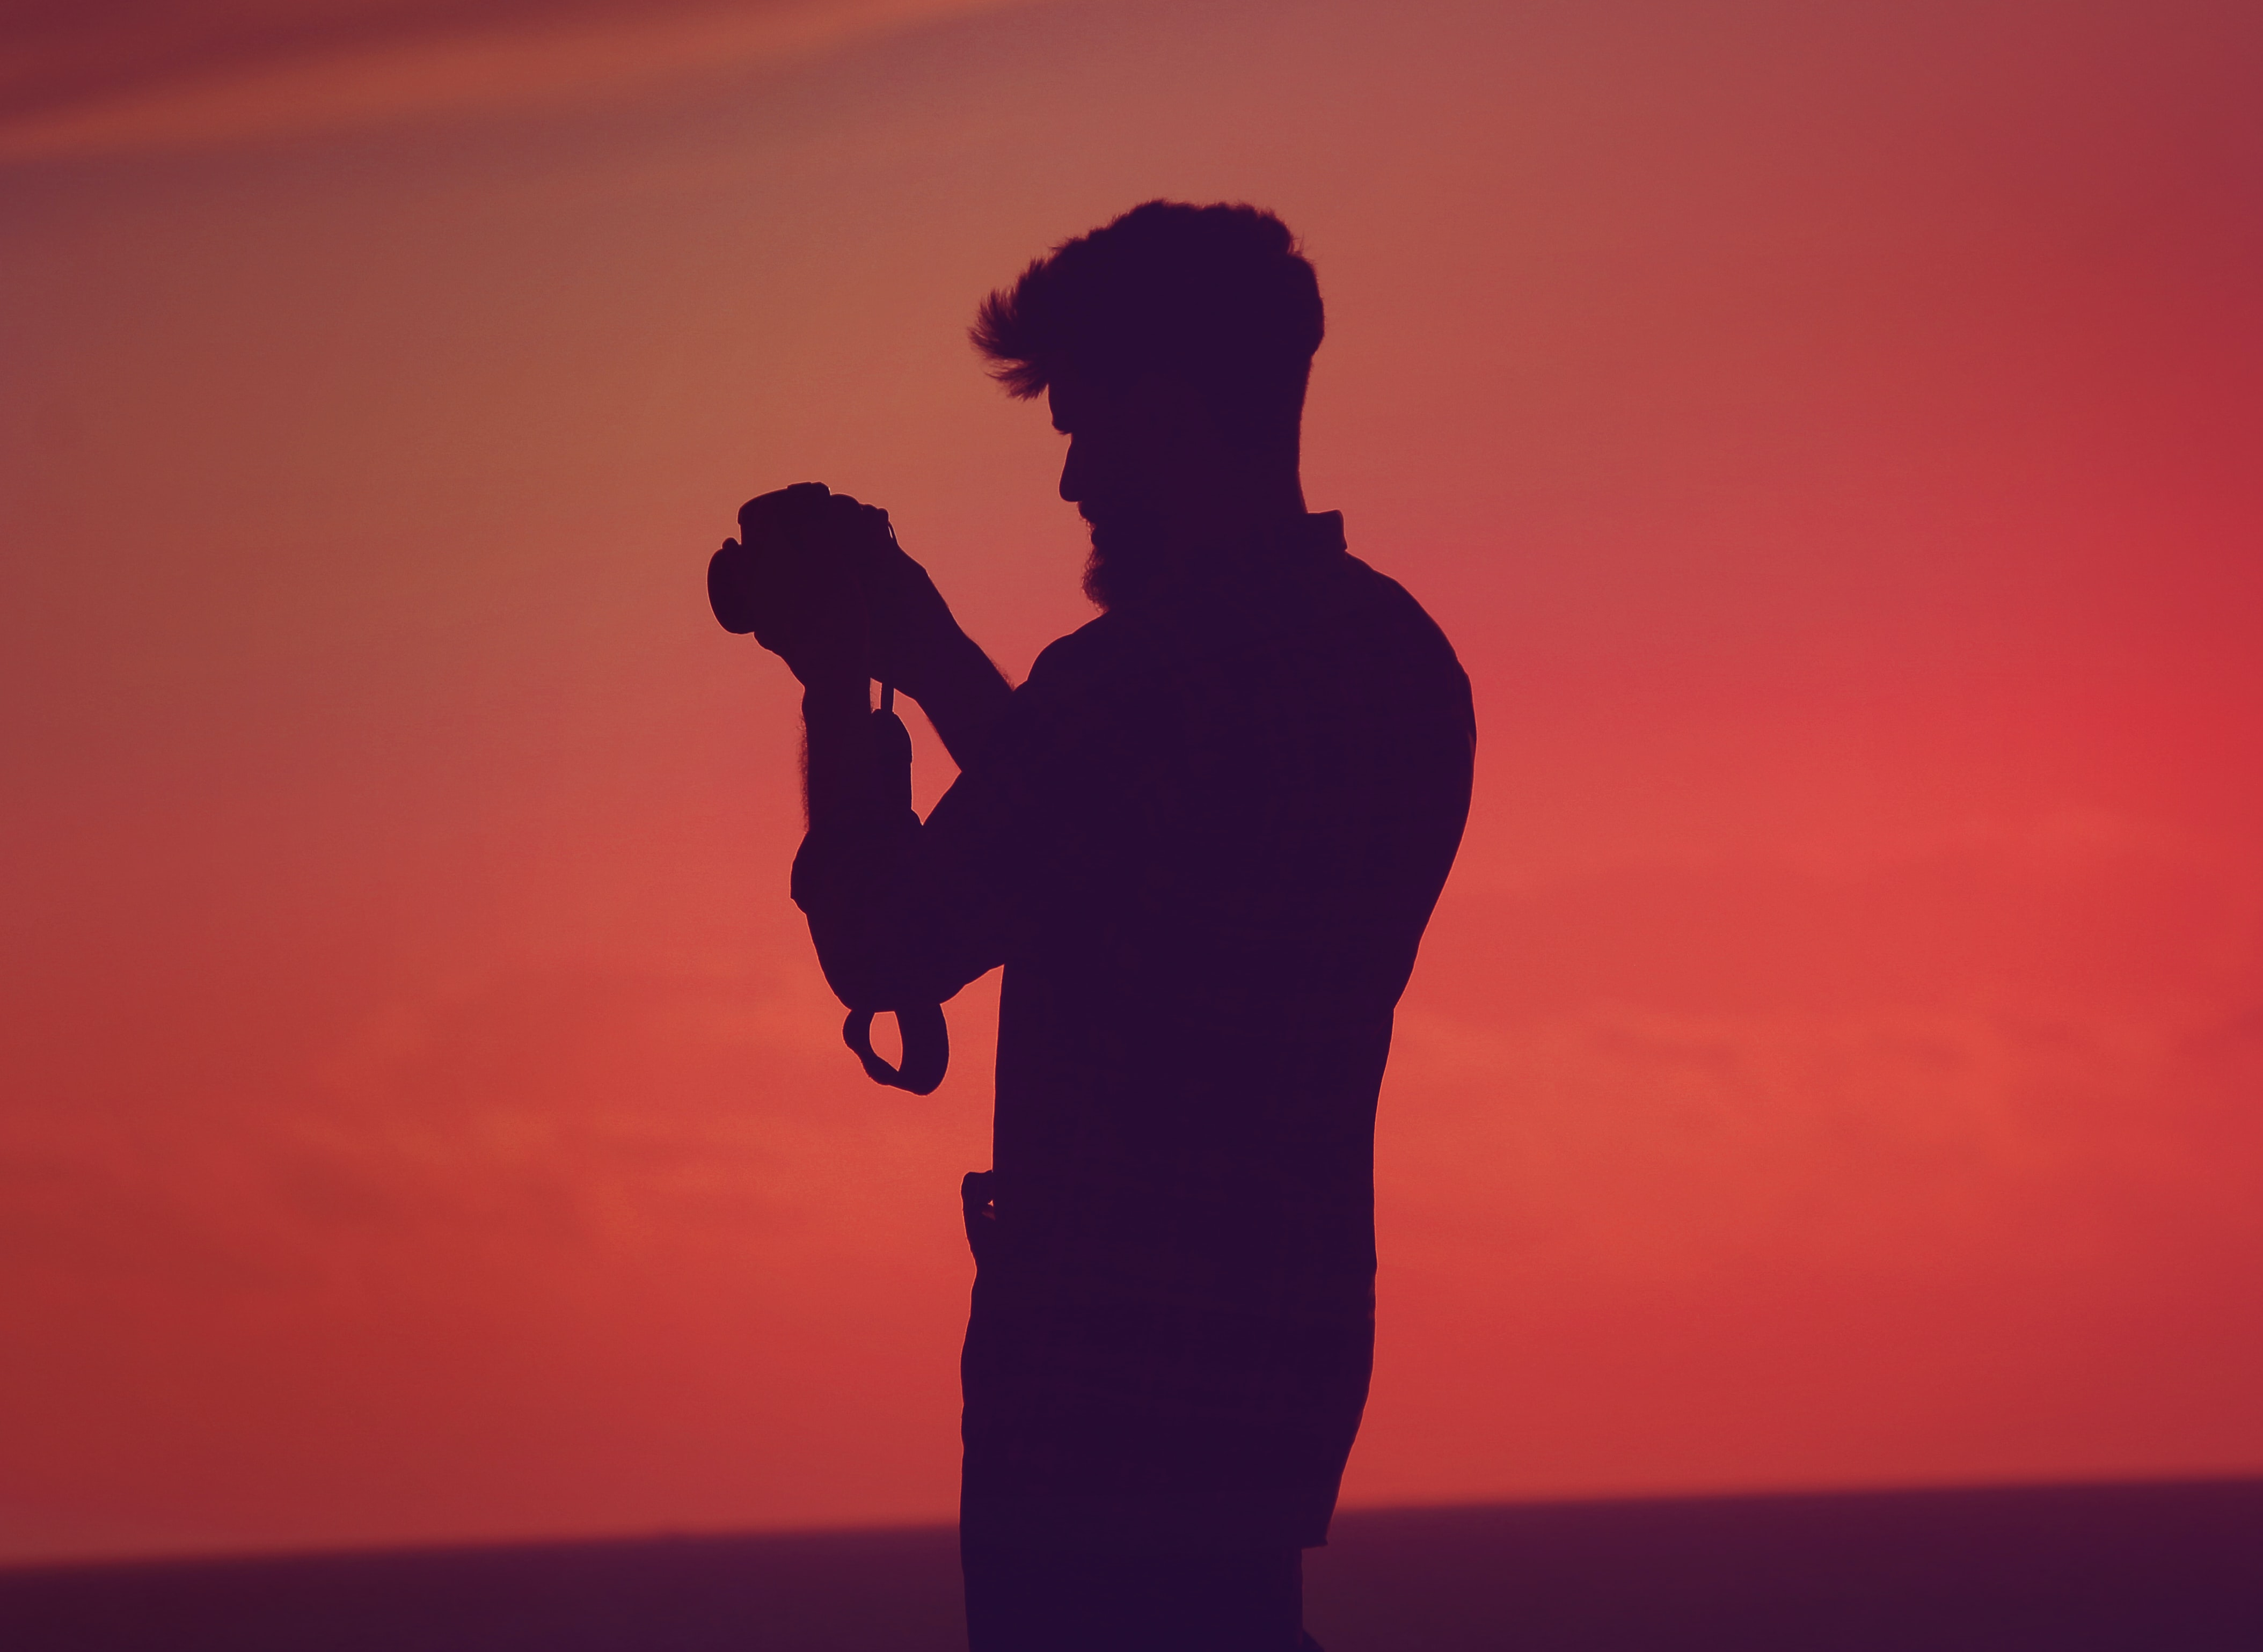 silhouette of man talking picture